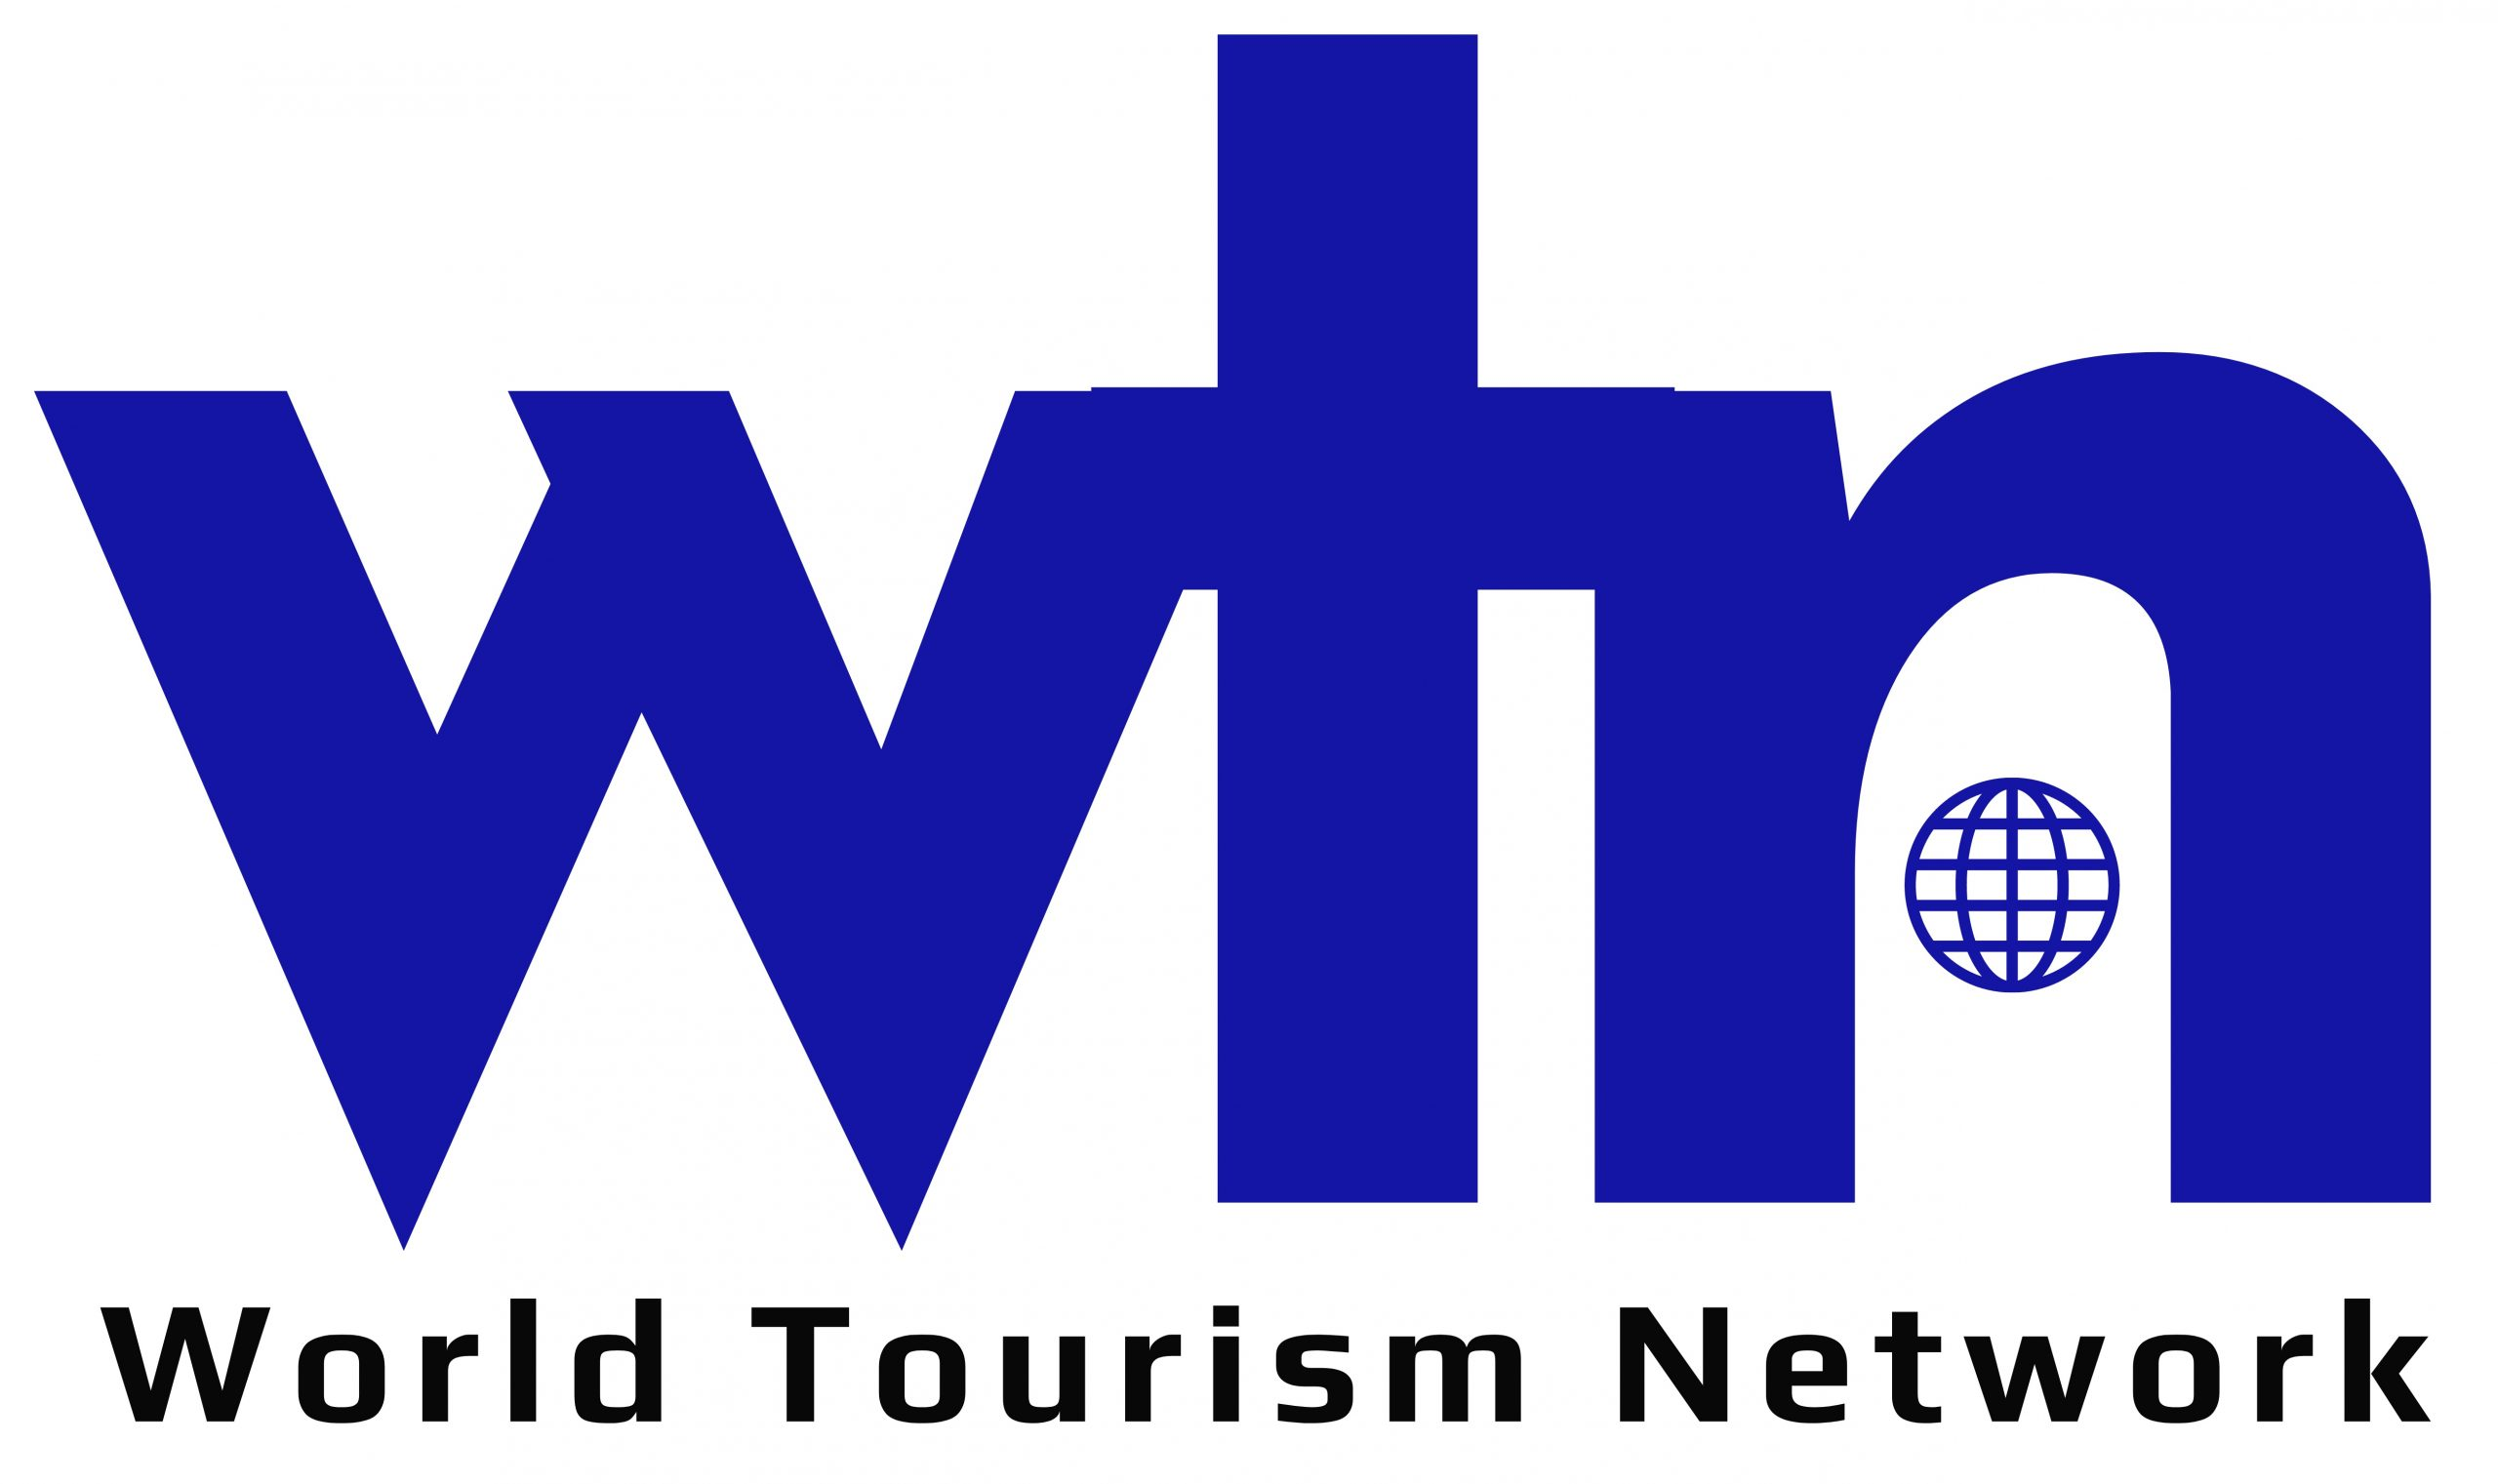 World Tourism Network